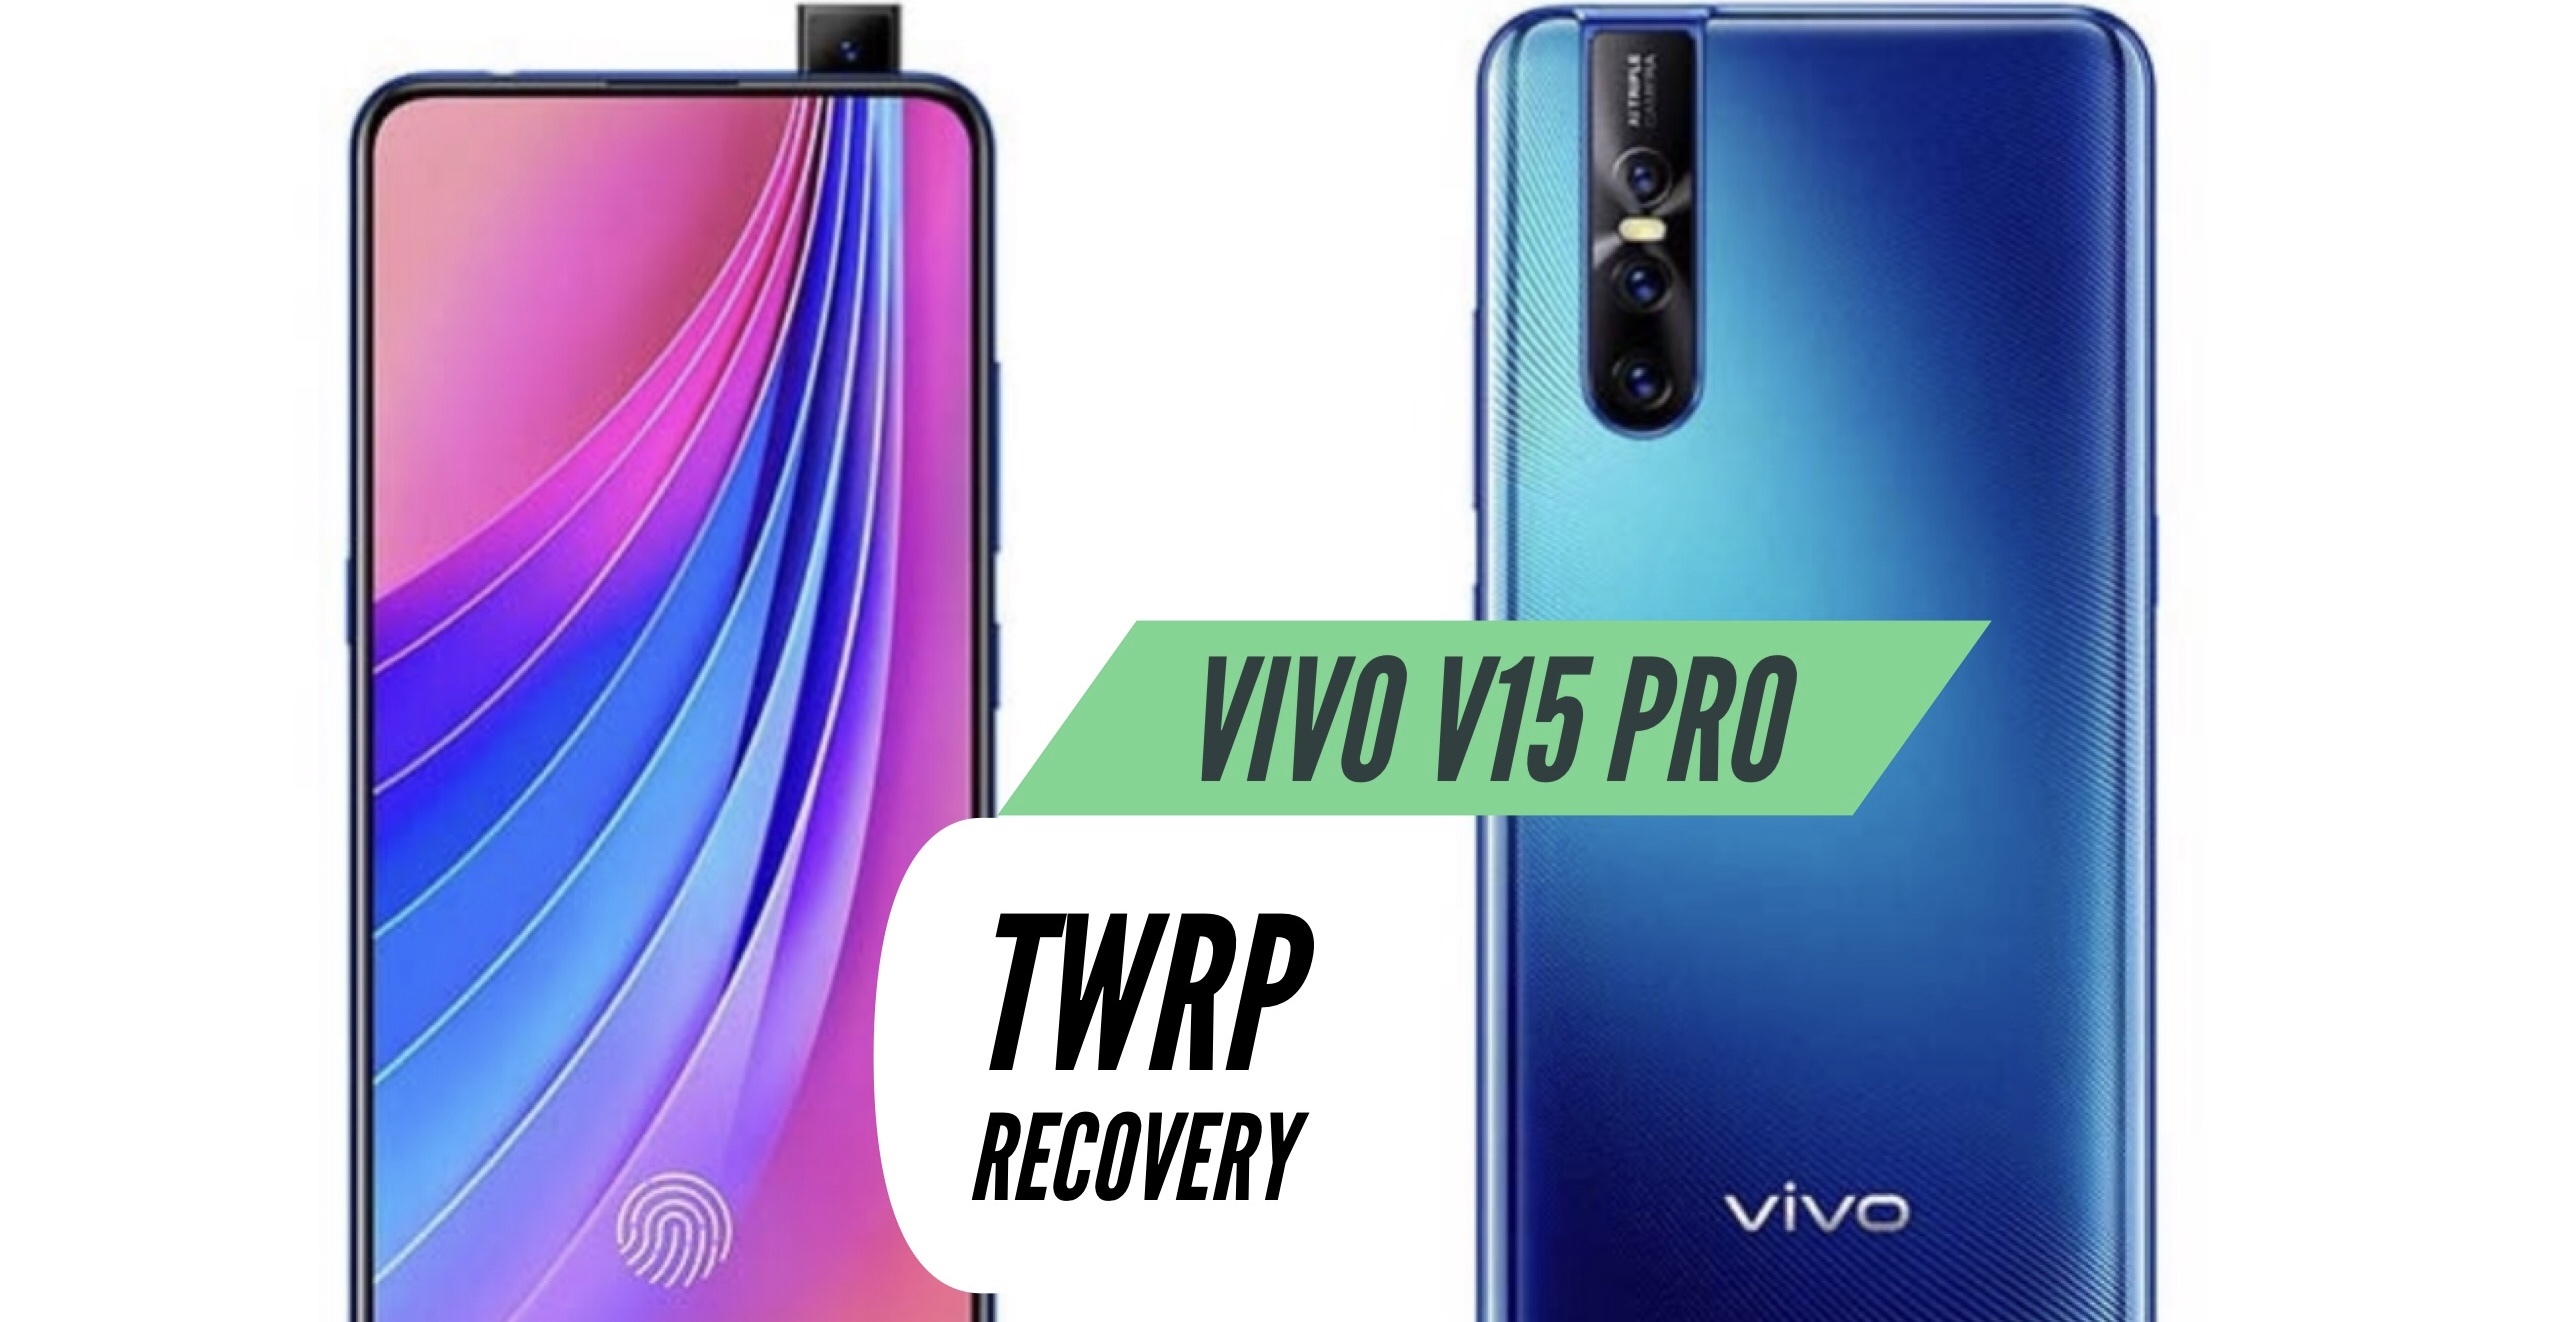 VIVO V15 Pro TWRP Recovery Installation - Two Easy METHODS!